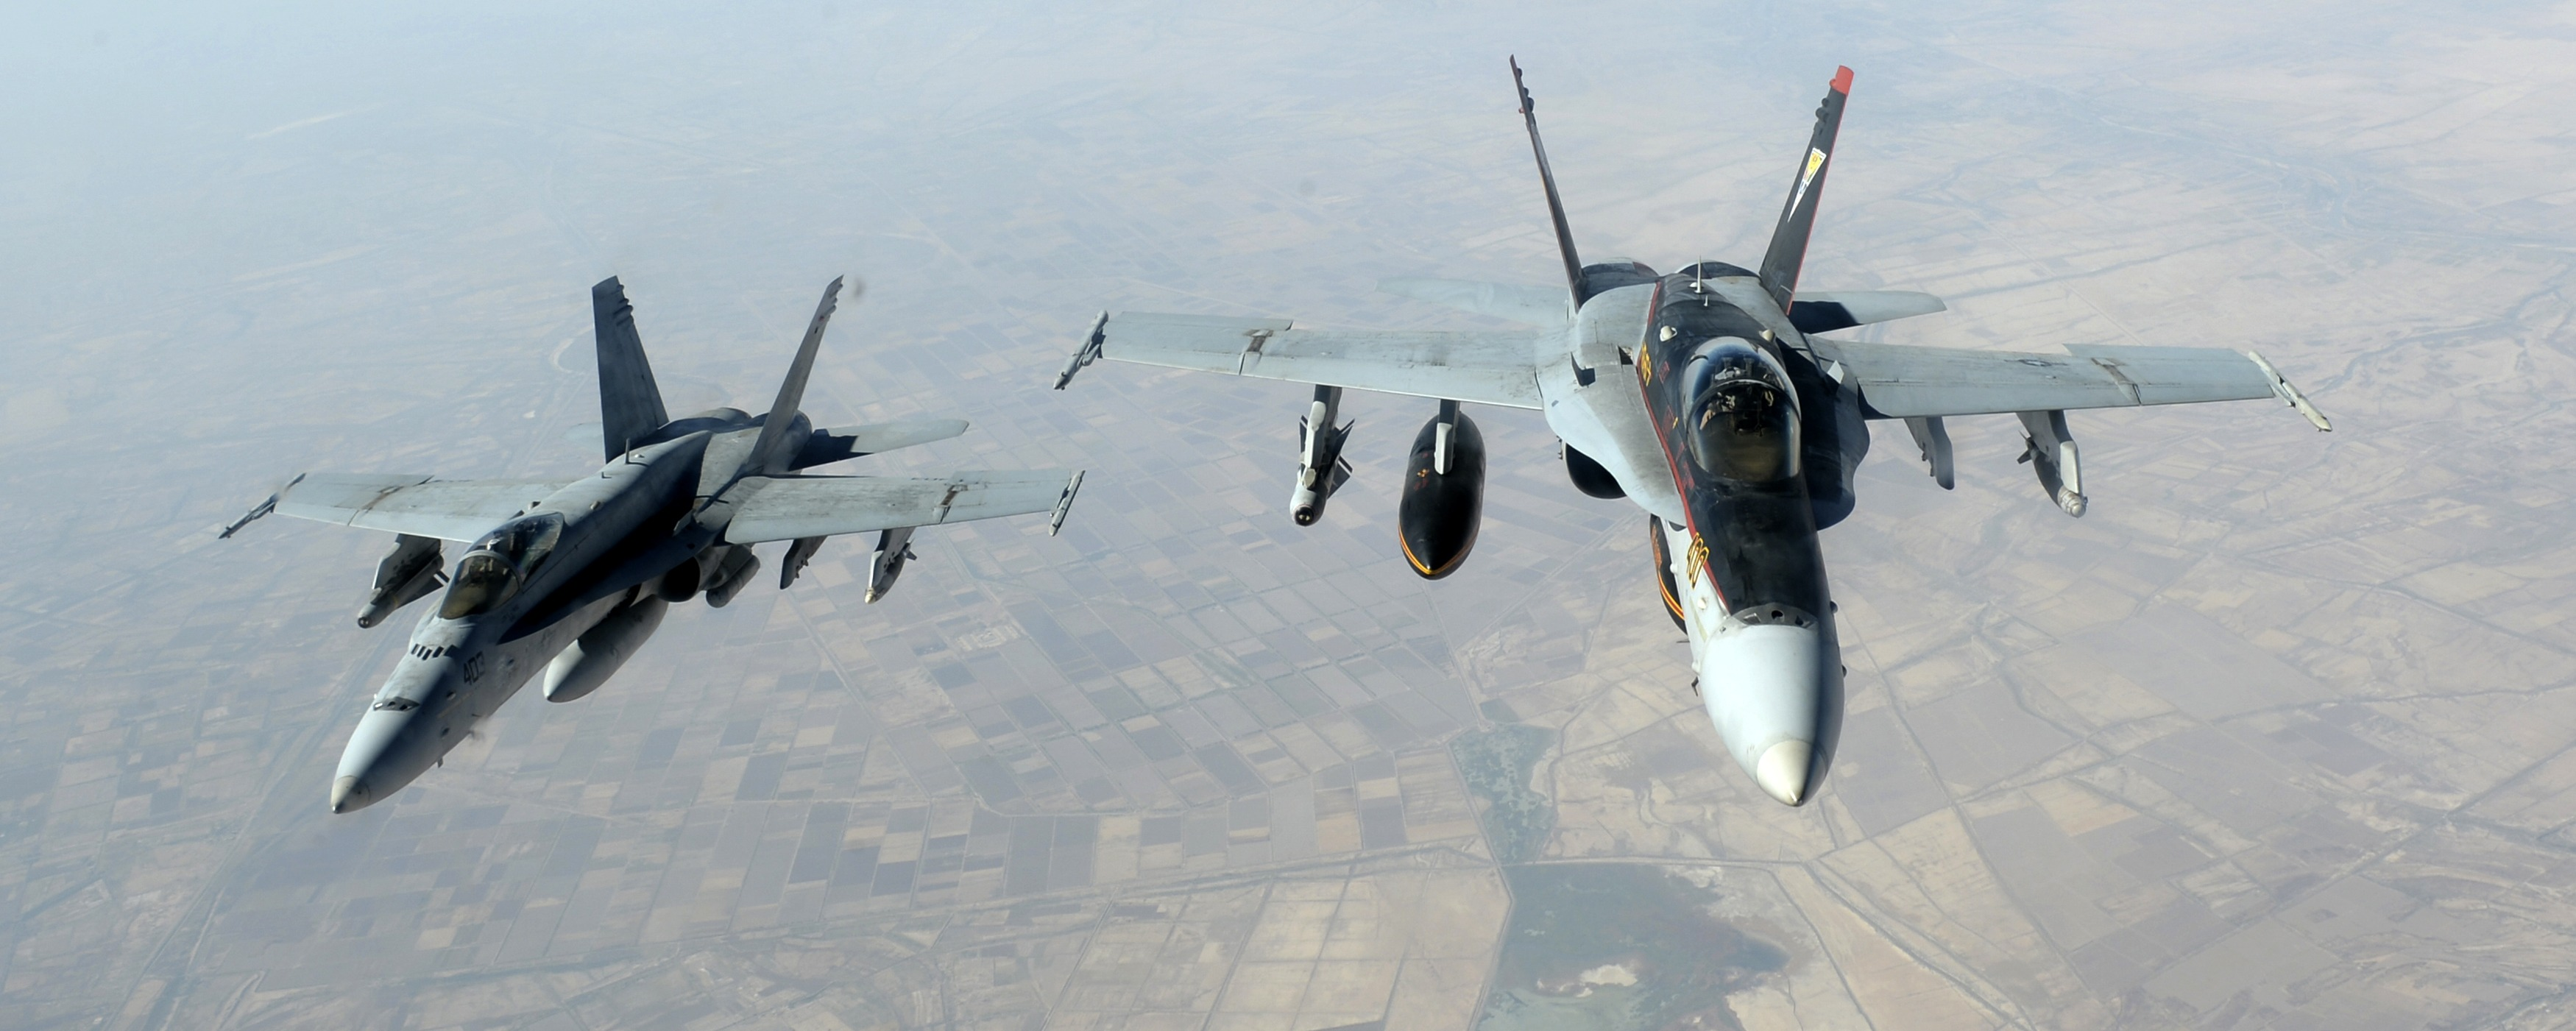 Operation Inherent Resolve Isis Airstrikes Campaign Finally Has A Name